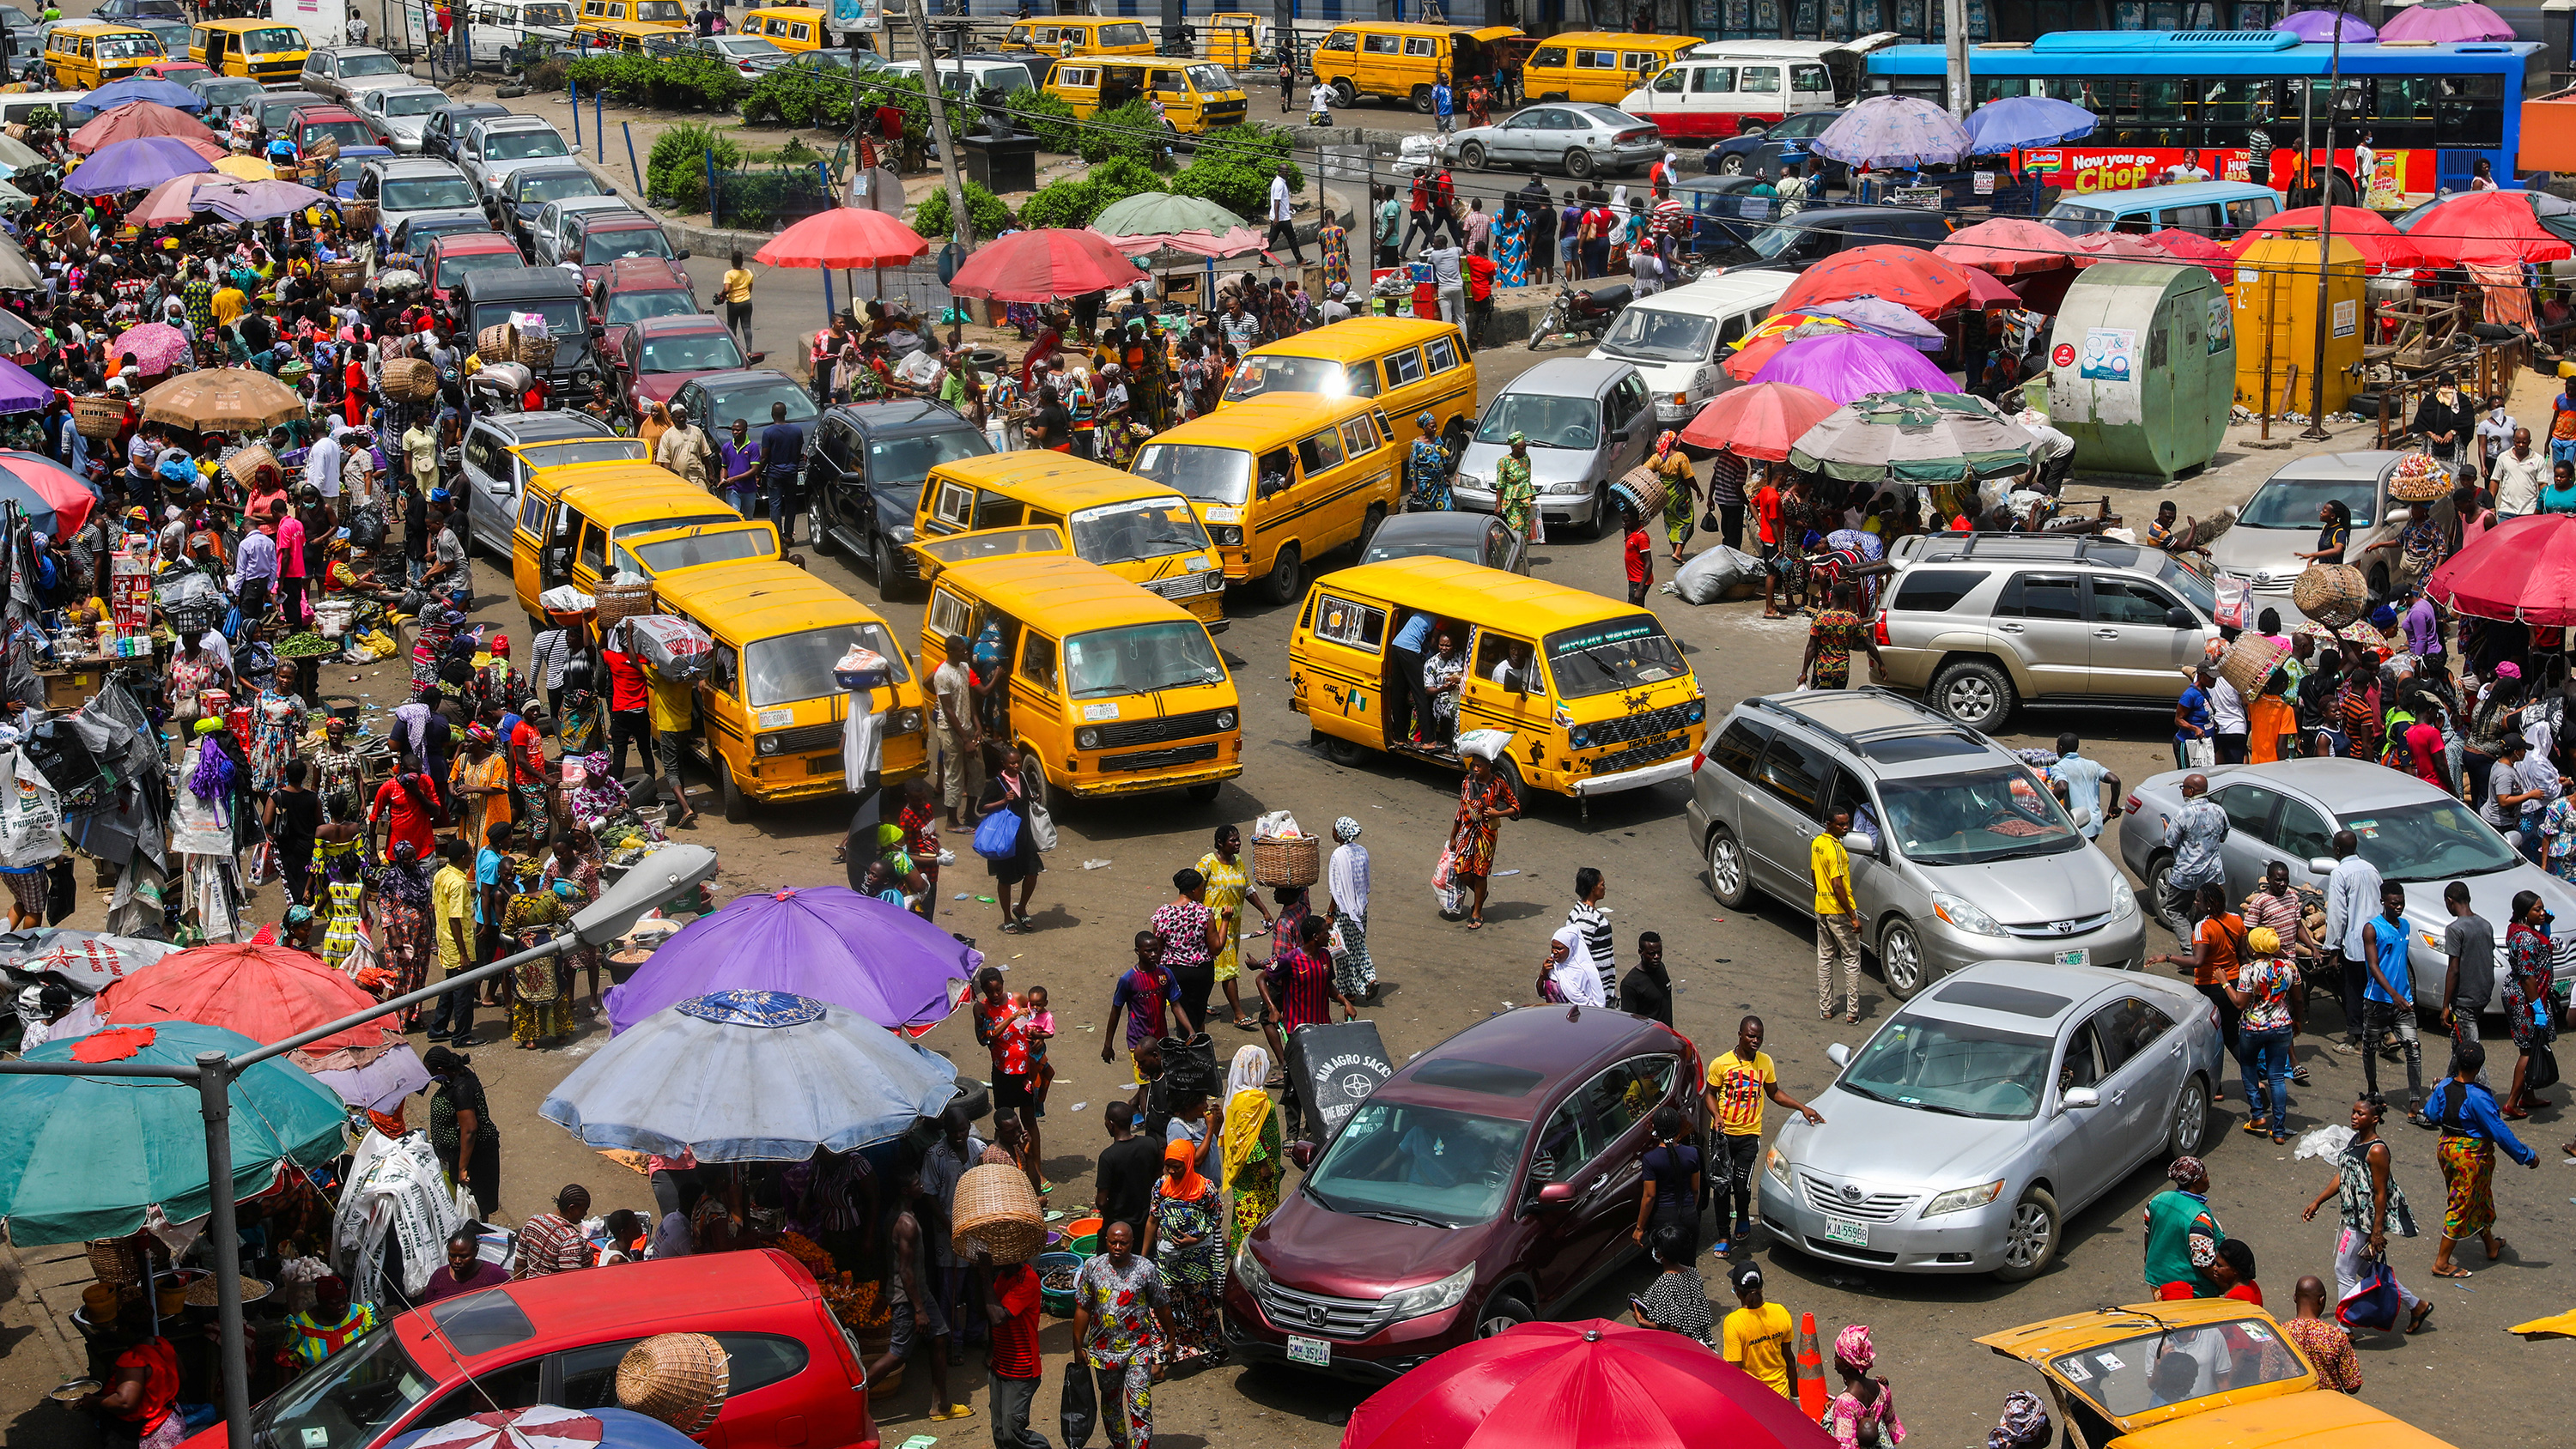 The photo shows a bustling market crowded with people and cars.